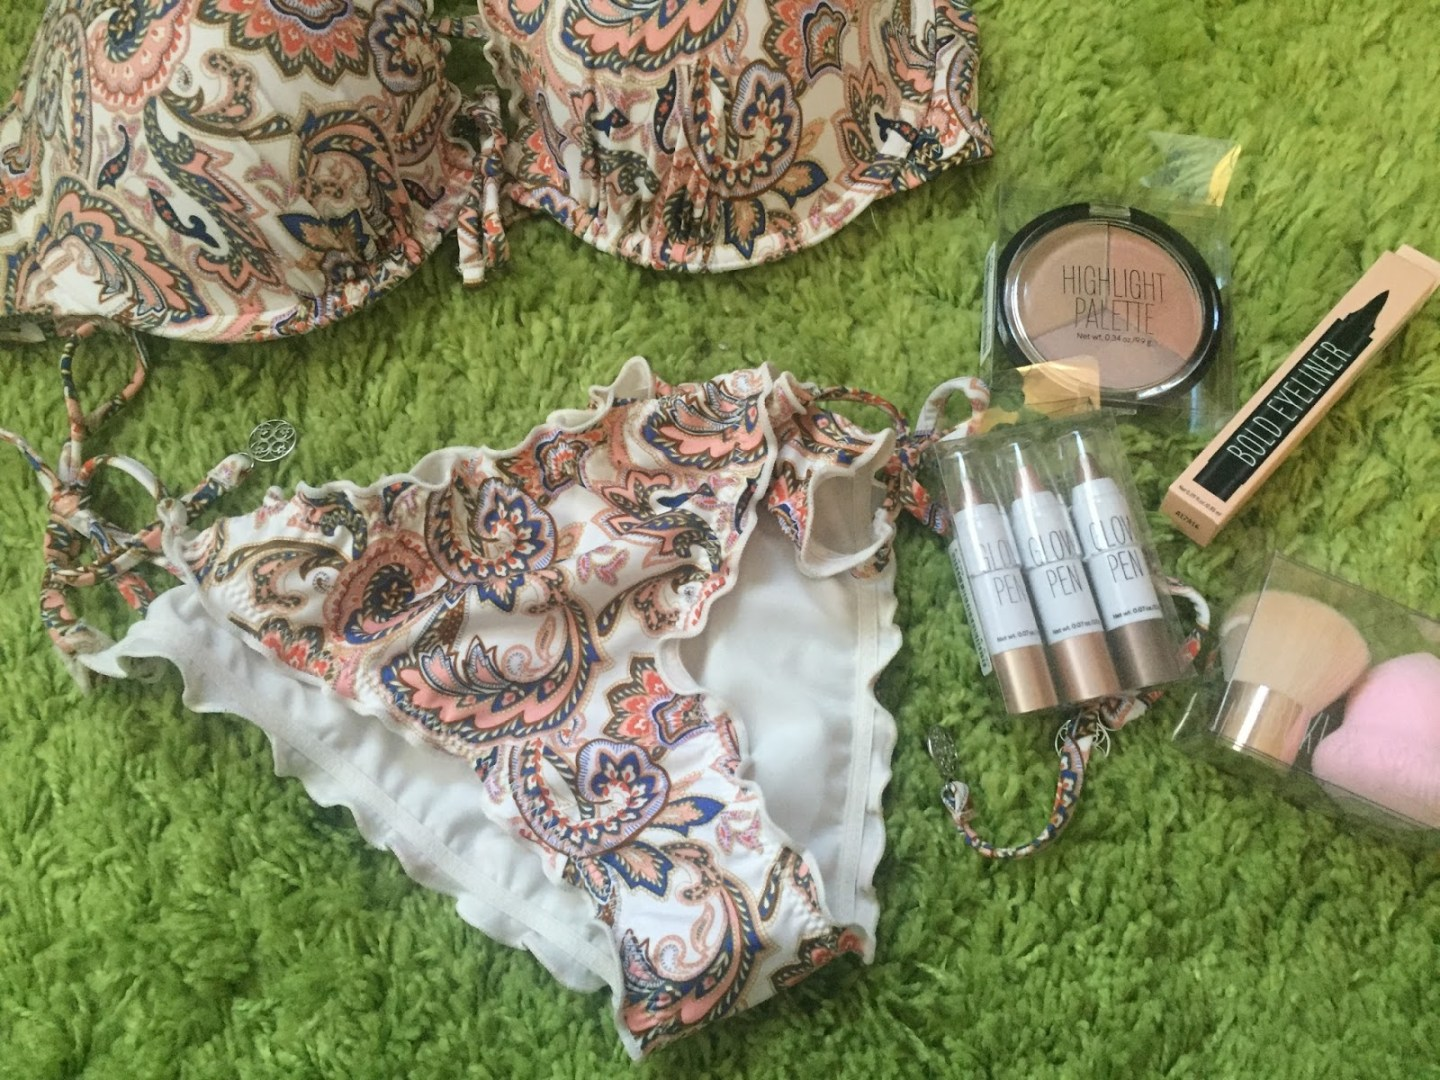 Formidable Joy | Formidable Joy Blog | Beauty | Make-up | H&M | H&M Haul | Shopping Haul